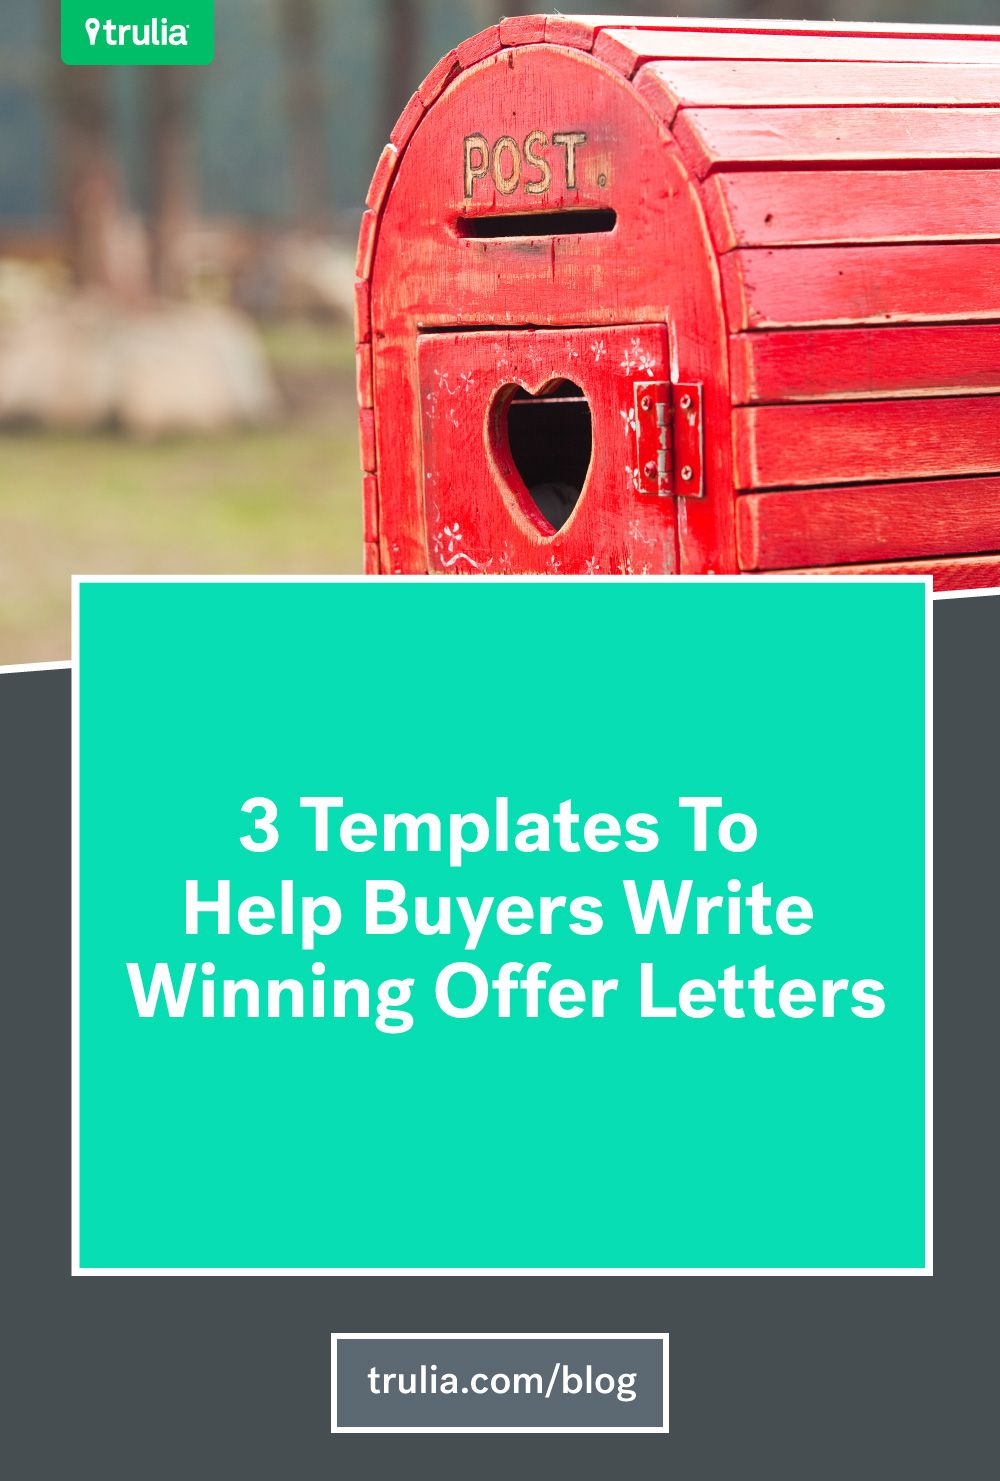 Offer Letter Templates For Buyers  Trulia Blog  Real Estate